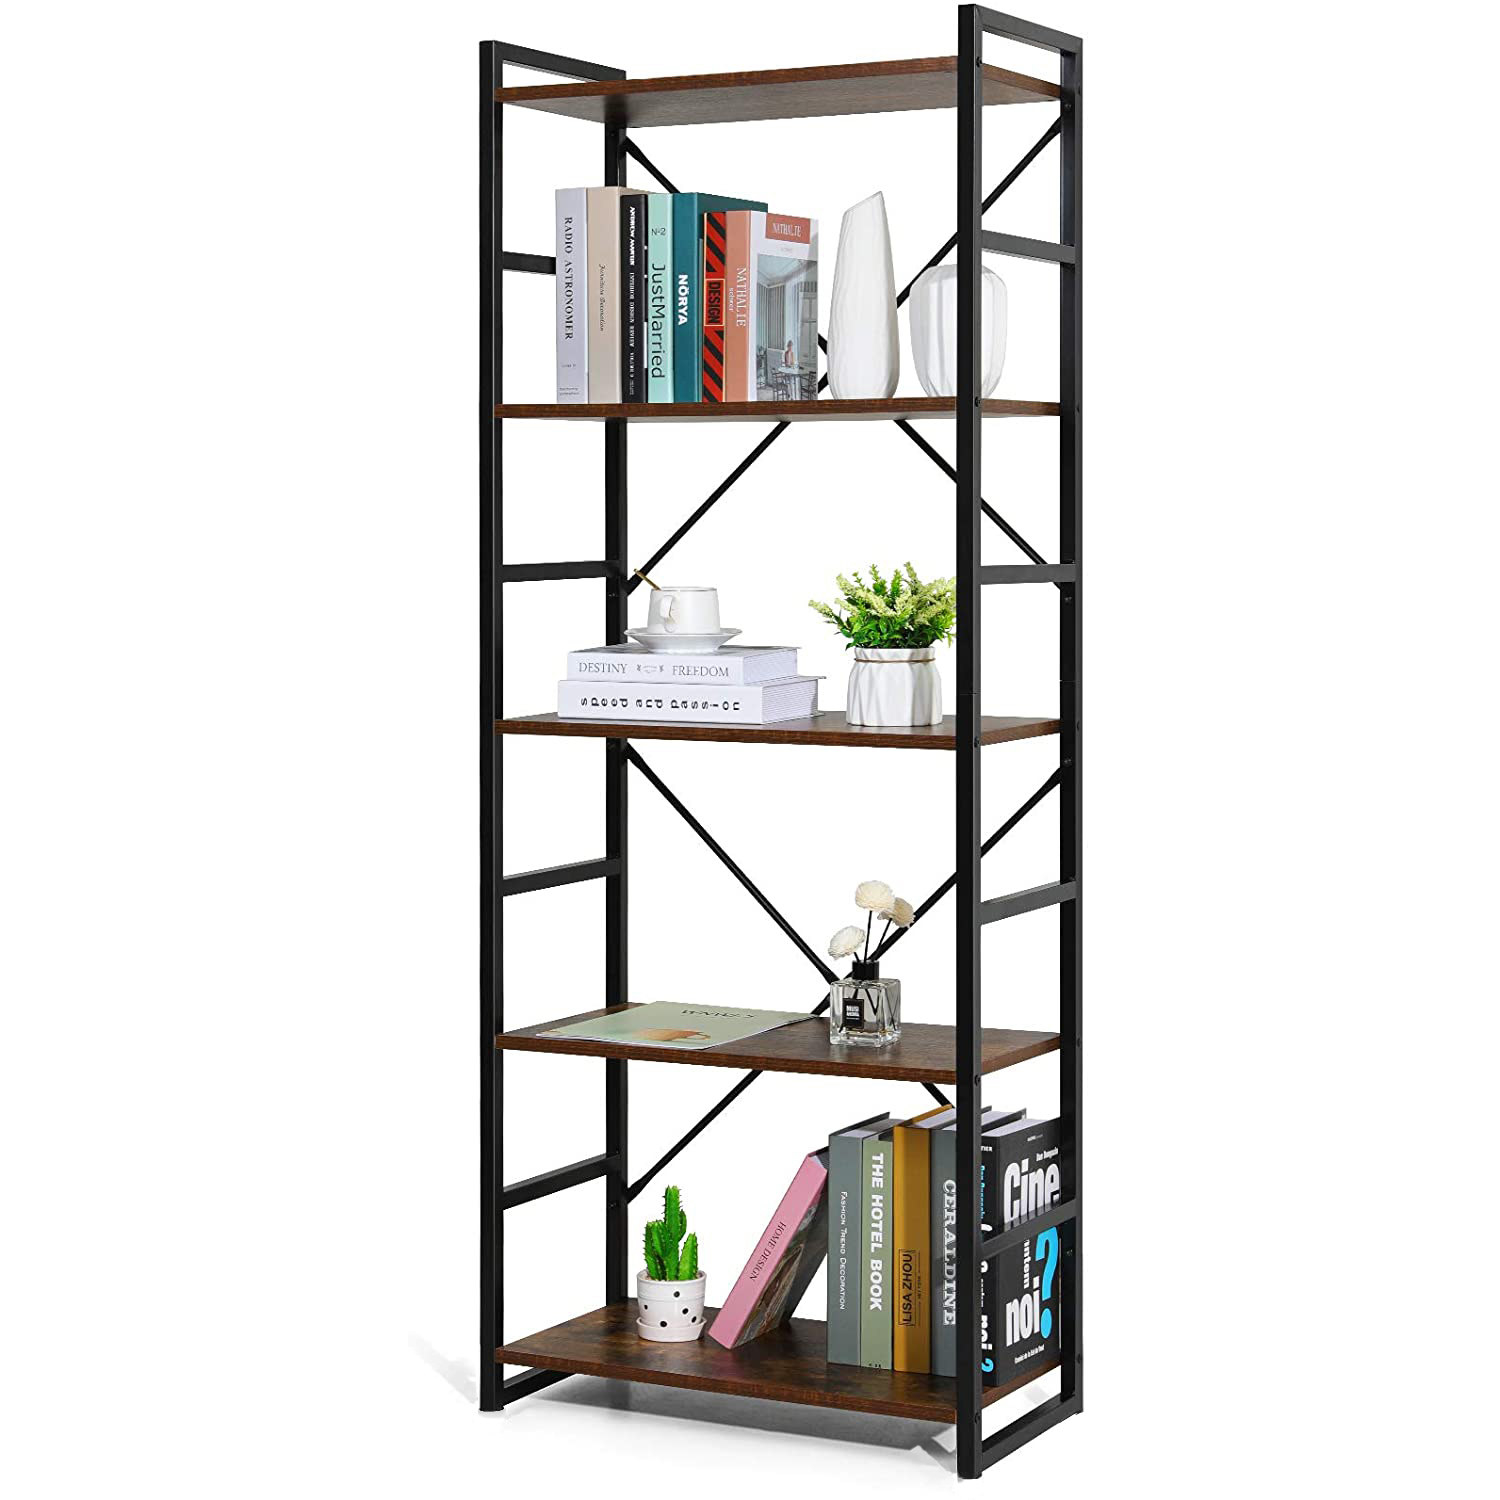 the open bookcase with five shelves